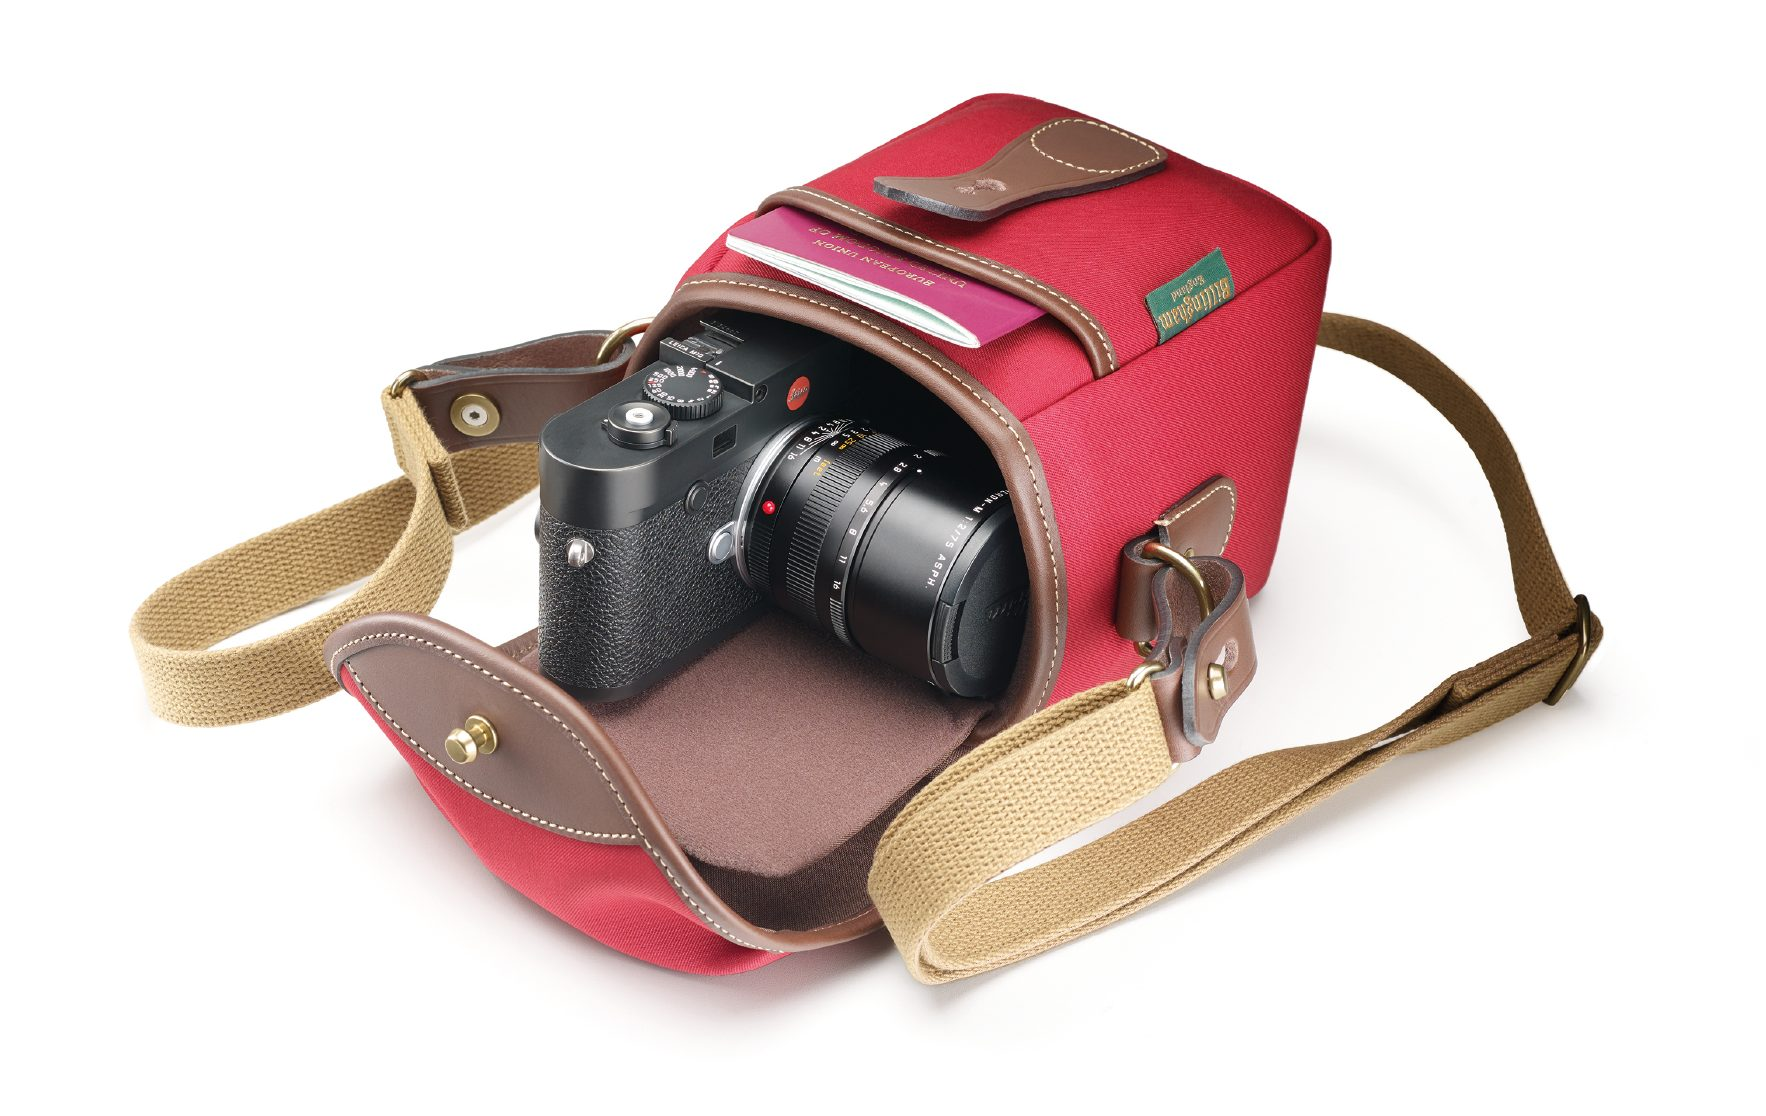 Billingham announces its latest small camera bag